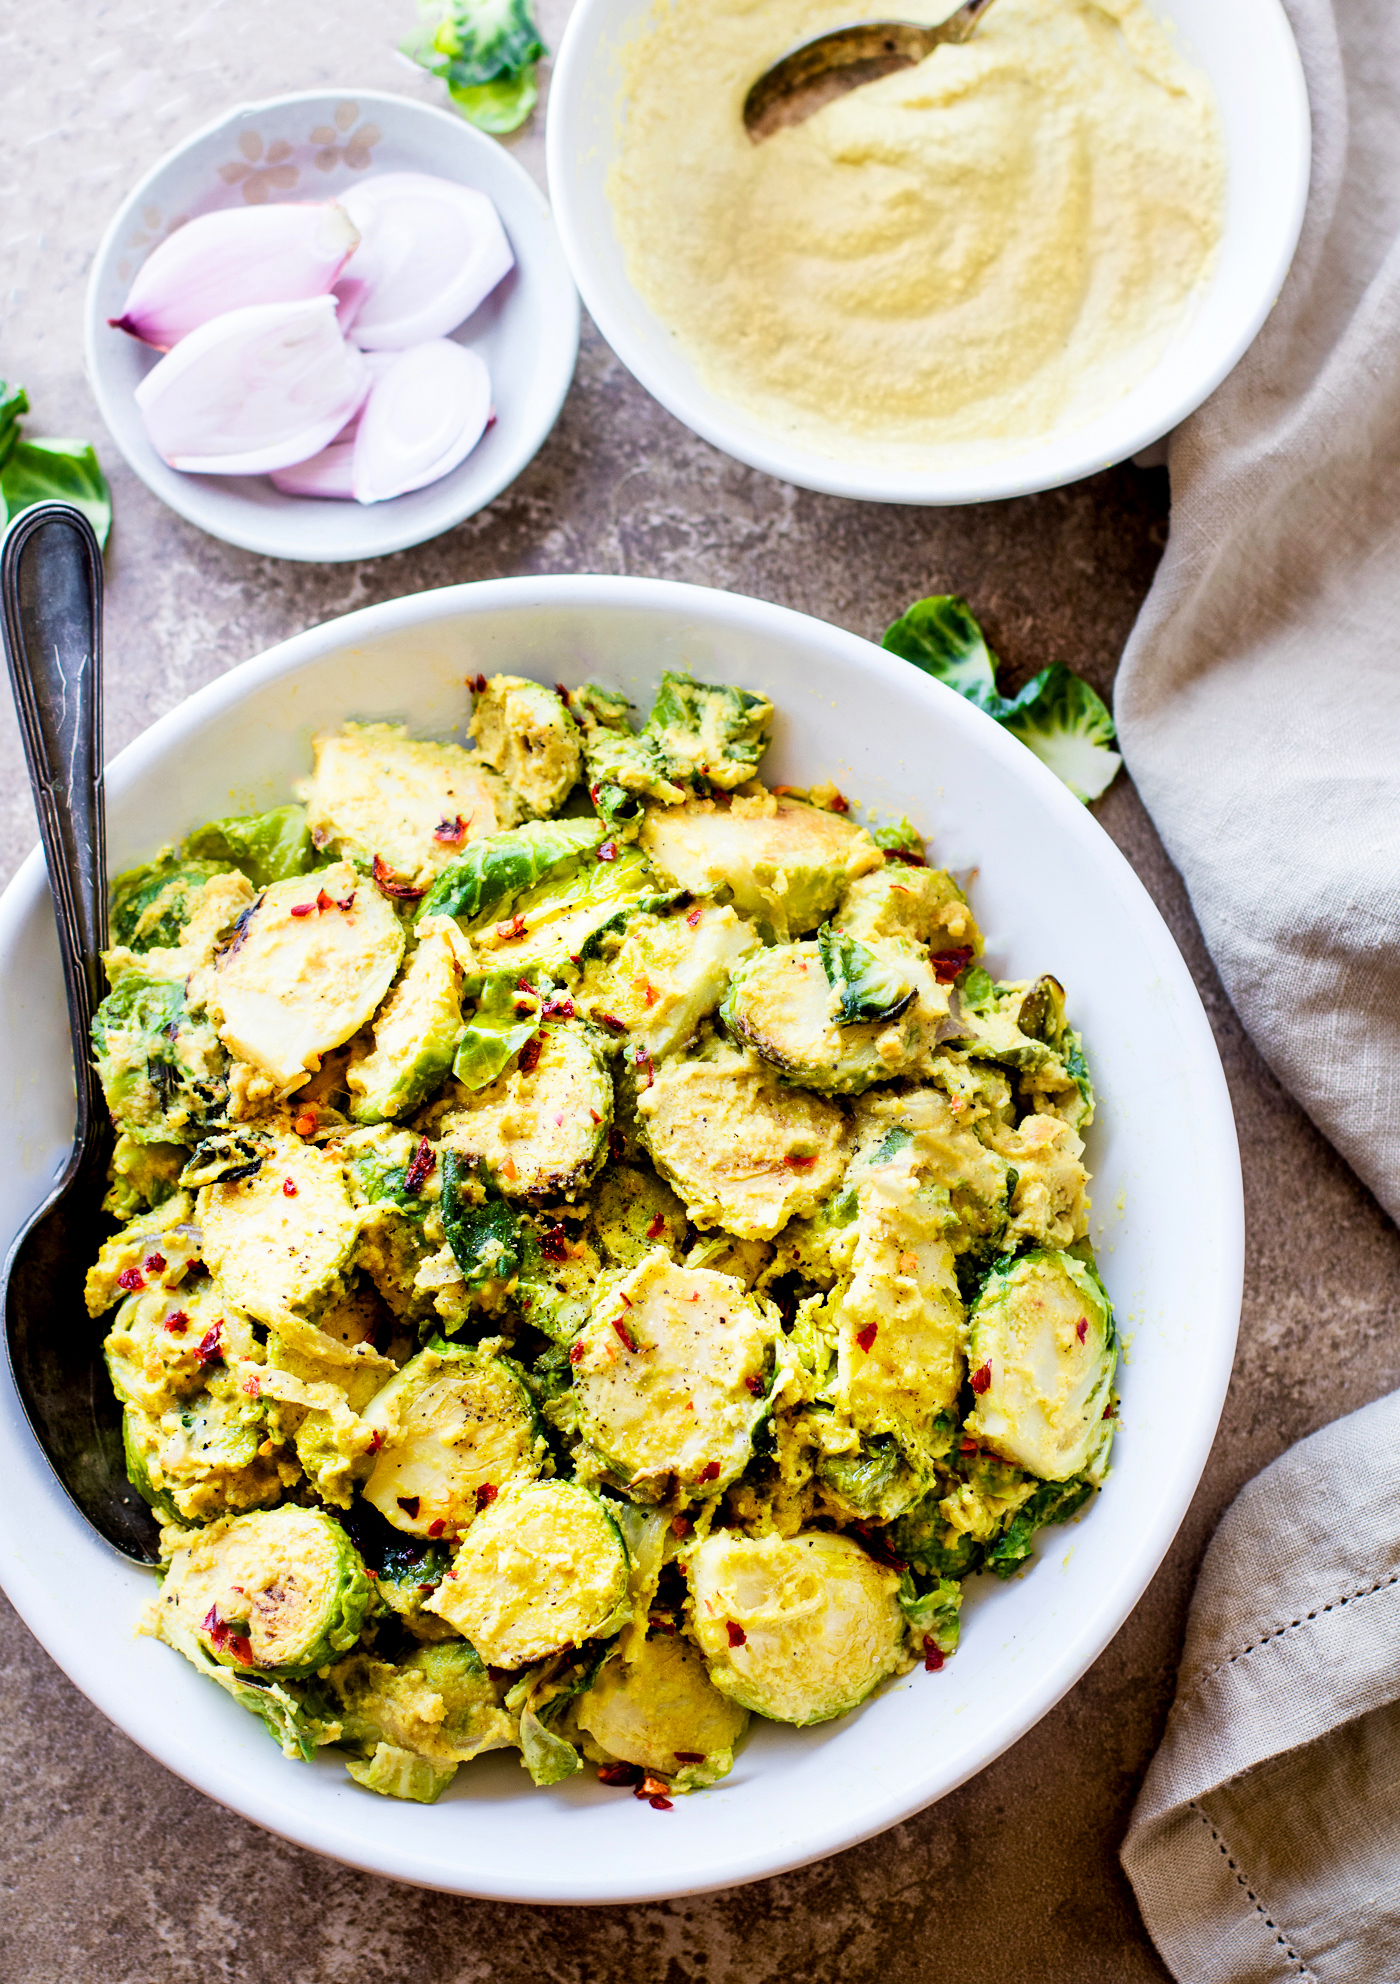 CREAMY MUSTARD BRUSSELS SPROUTS SUPERFOOD SALAD